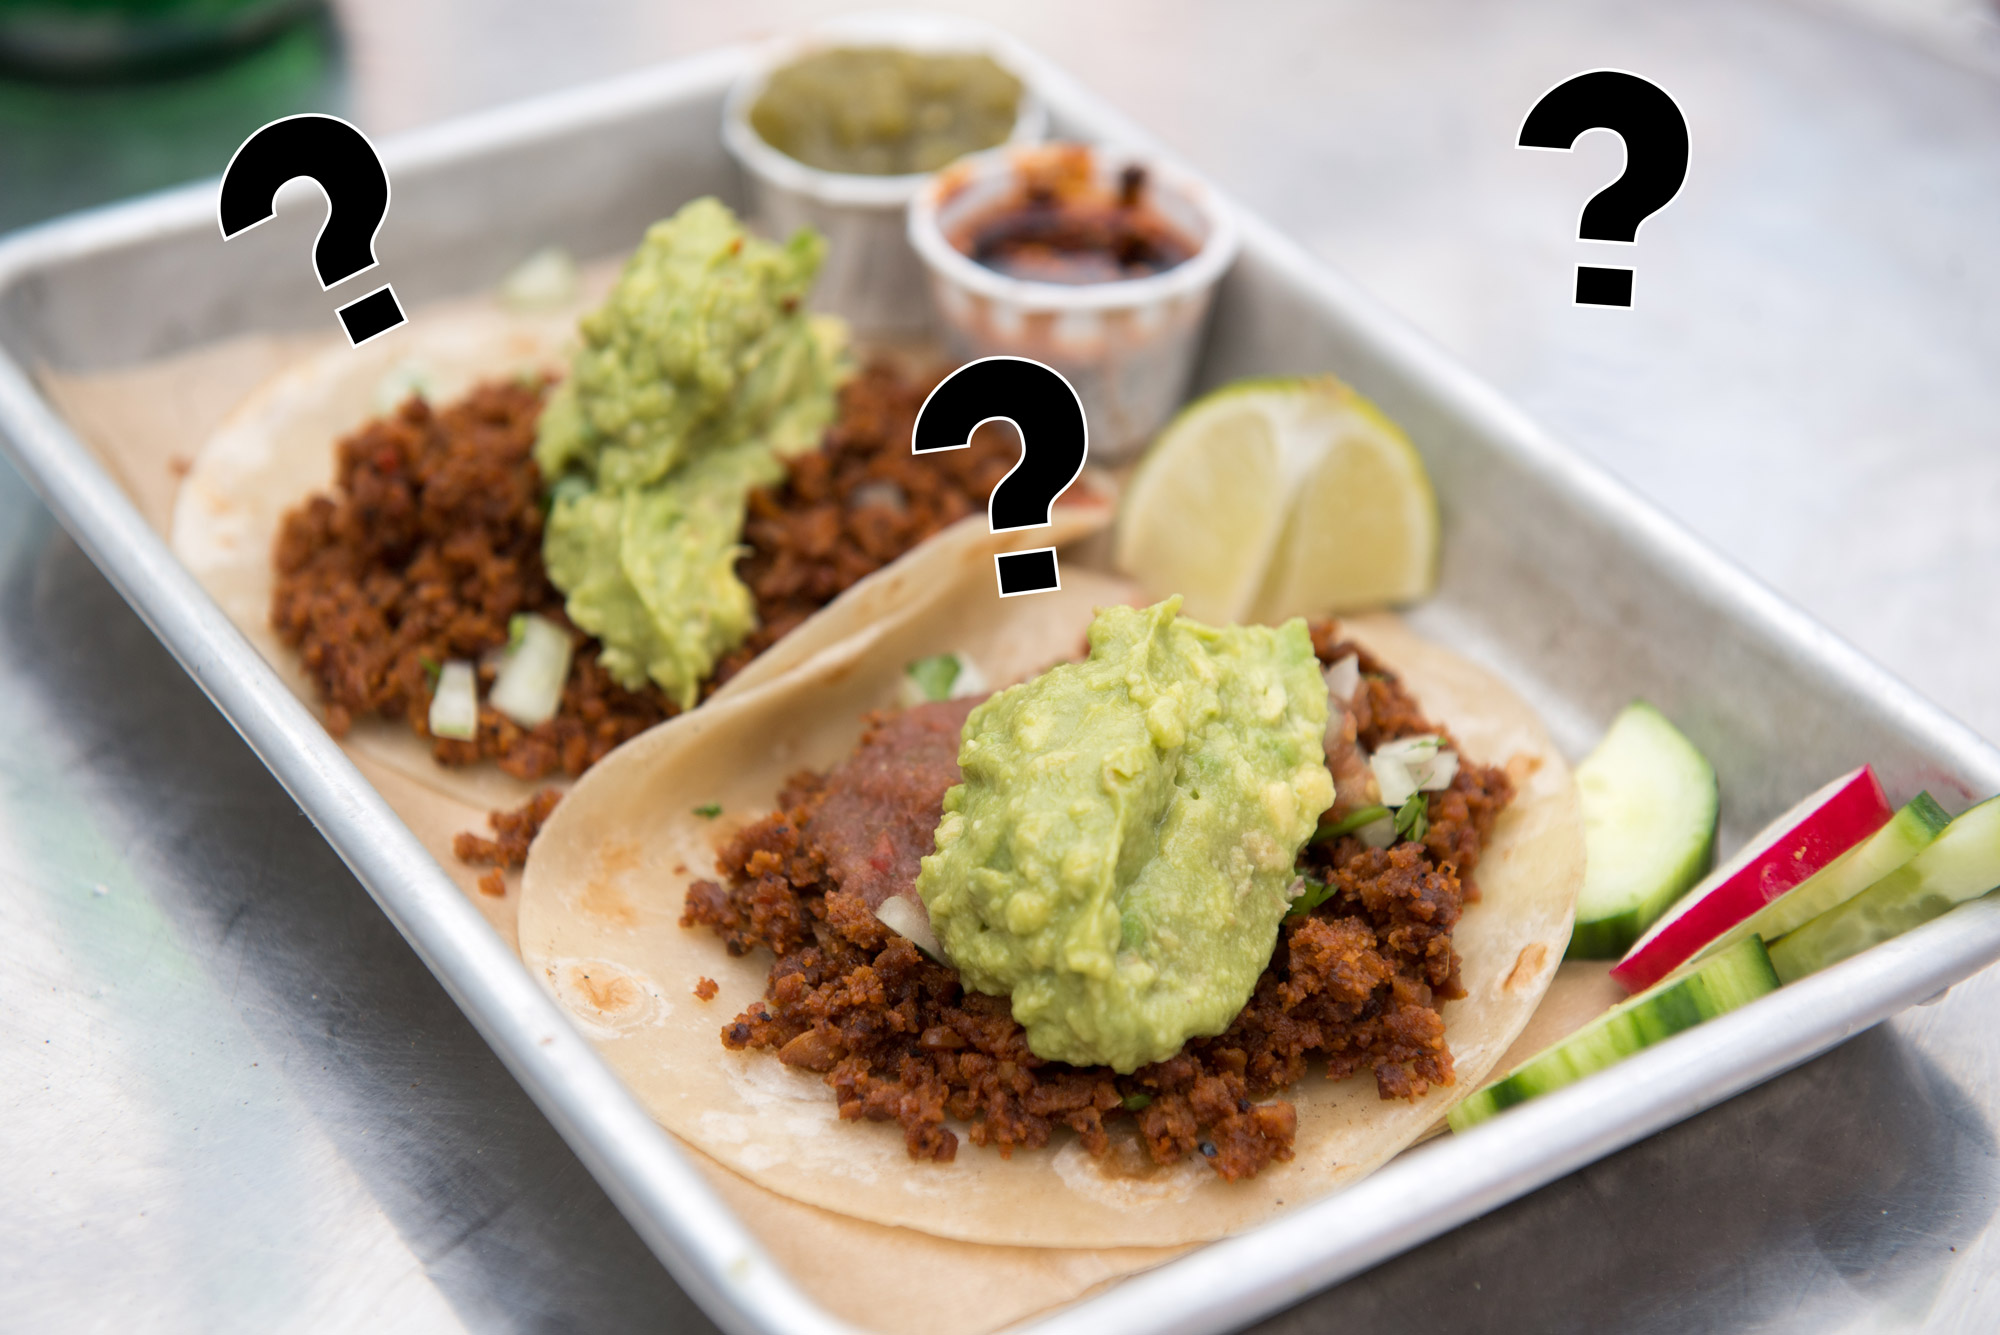 A picture of vegan chorizo tacos with question marks hanging above it